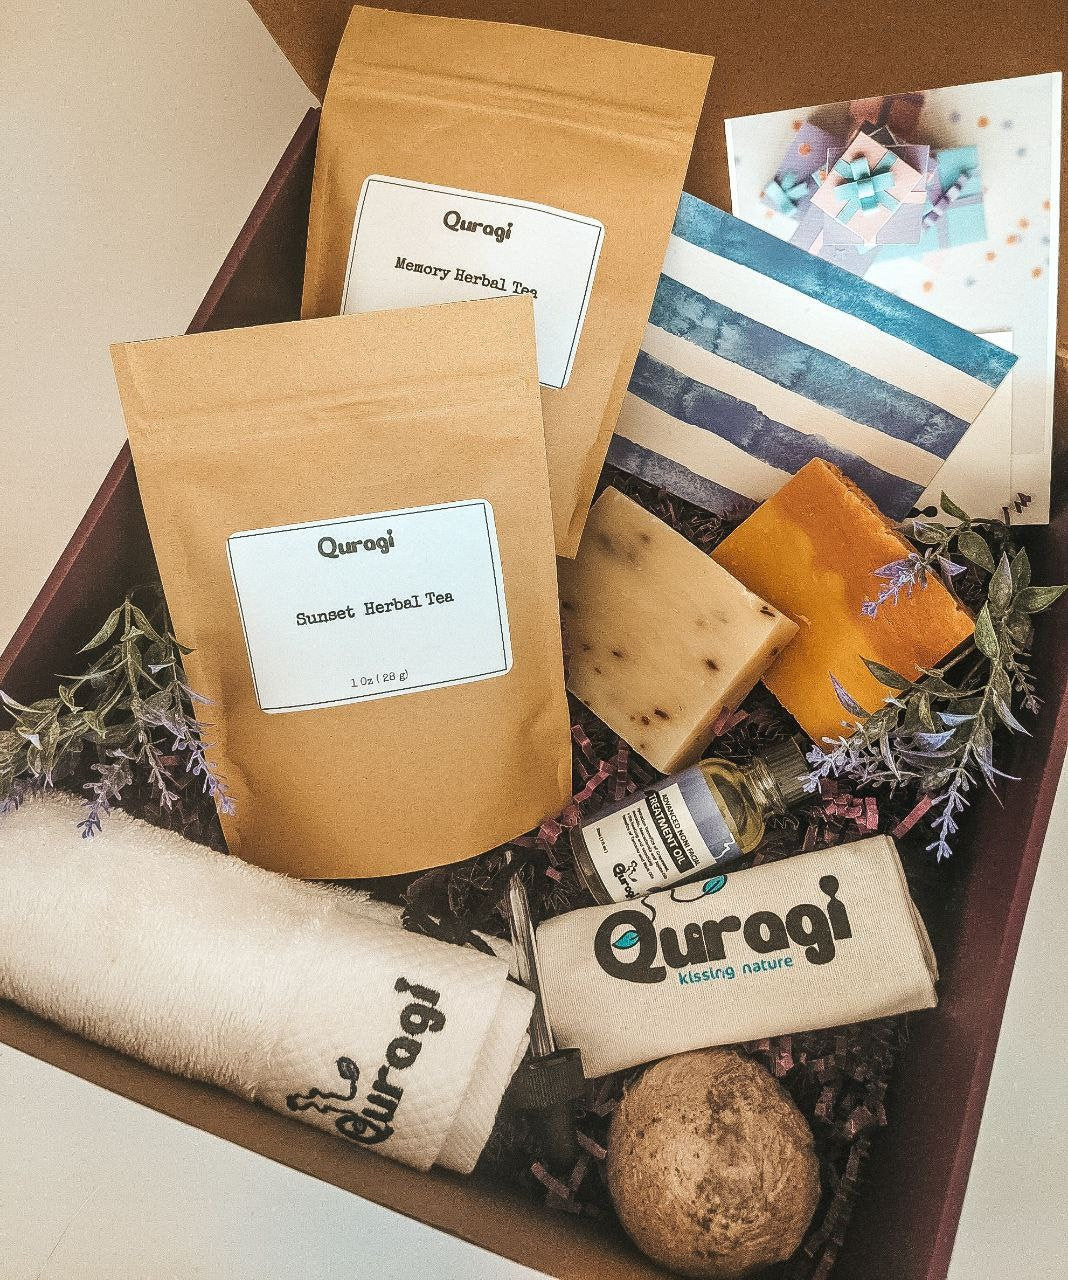 Personalized Gift, Self Care Package, Thinking Of You, Gift Basket, Gift Box for Her, Miss You Gift, Mother's Day Gift, Tea Gift, Home Spa